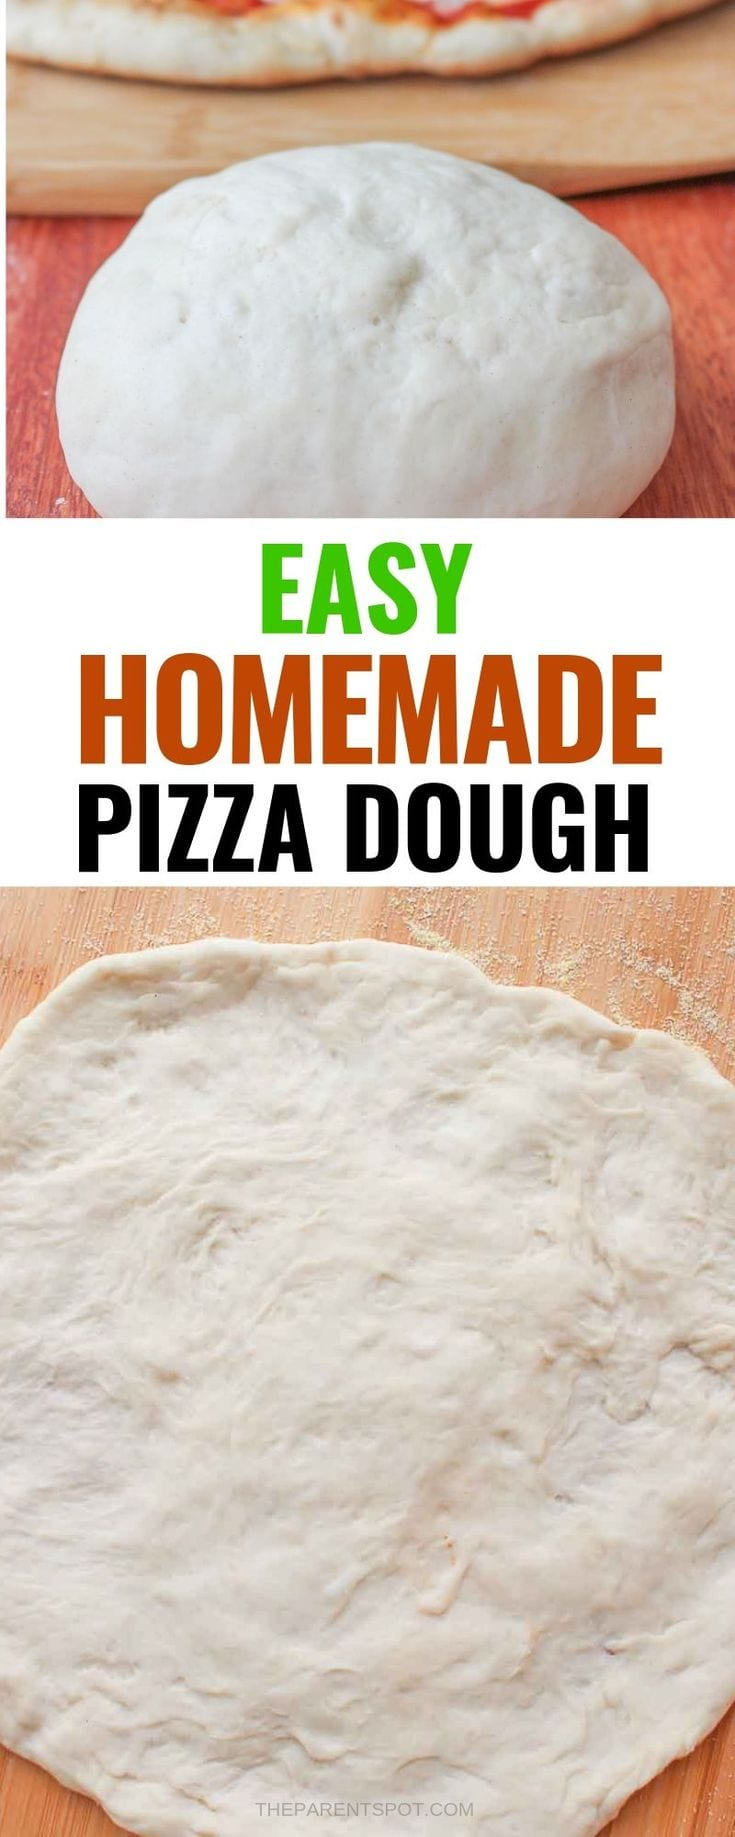 easy home made pizza dough